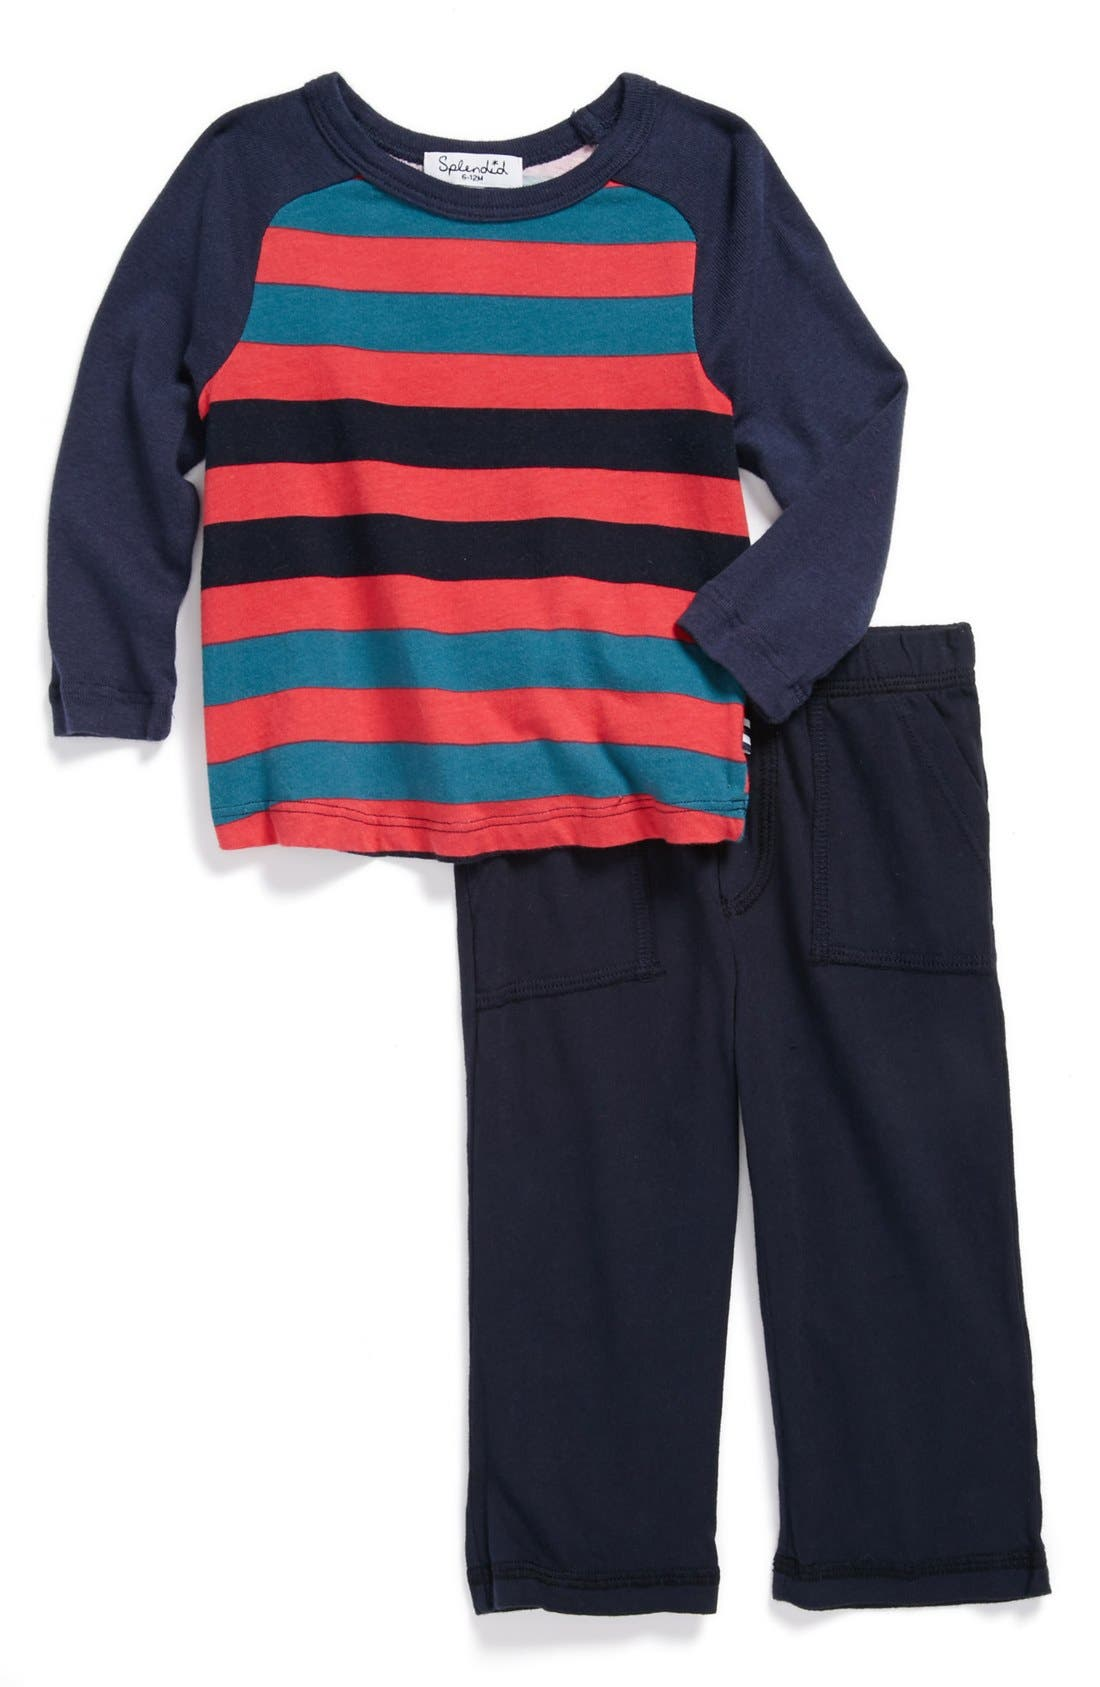 Alternate Image 1 Selected - Splendid T-Shirt & Pants (Baby)